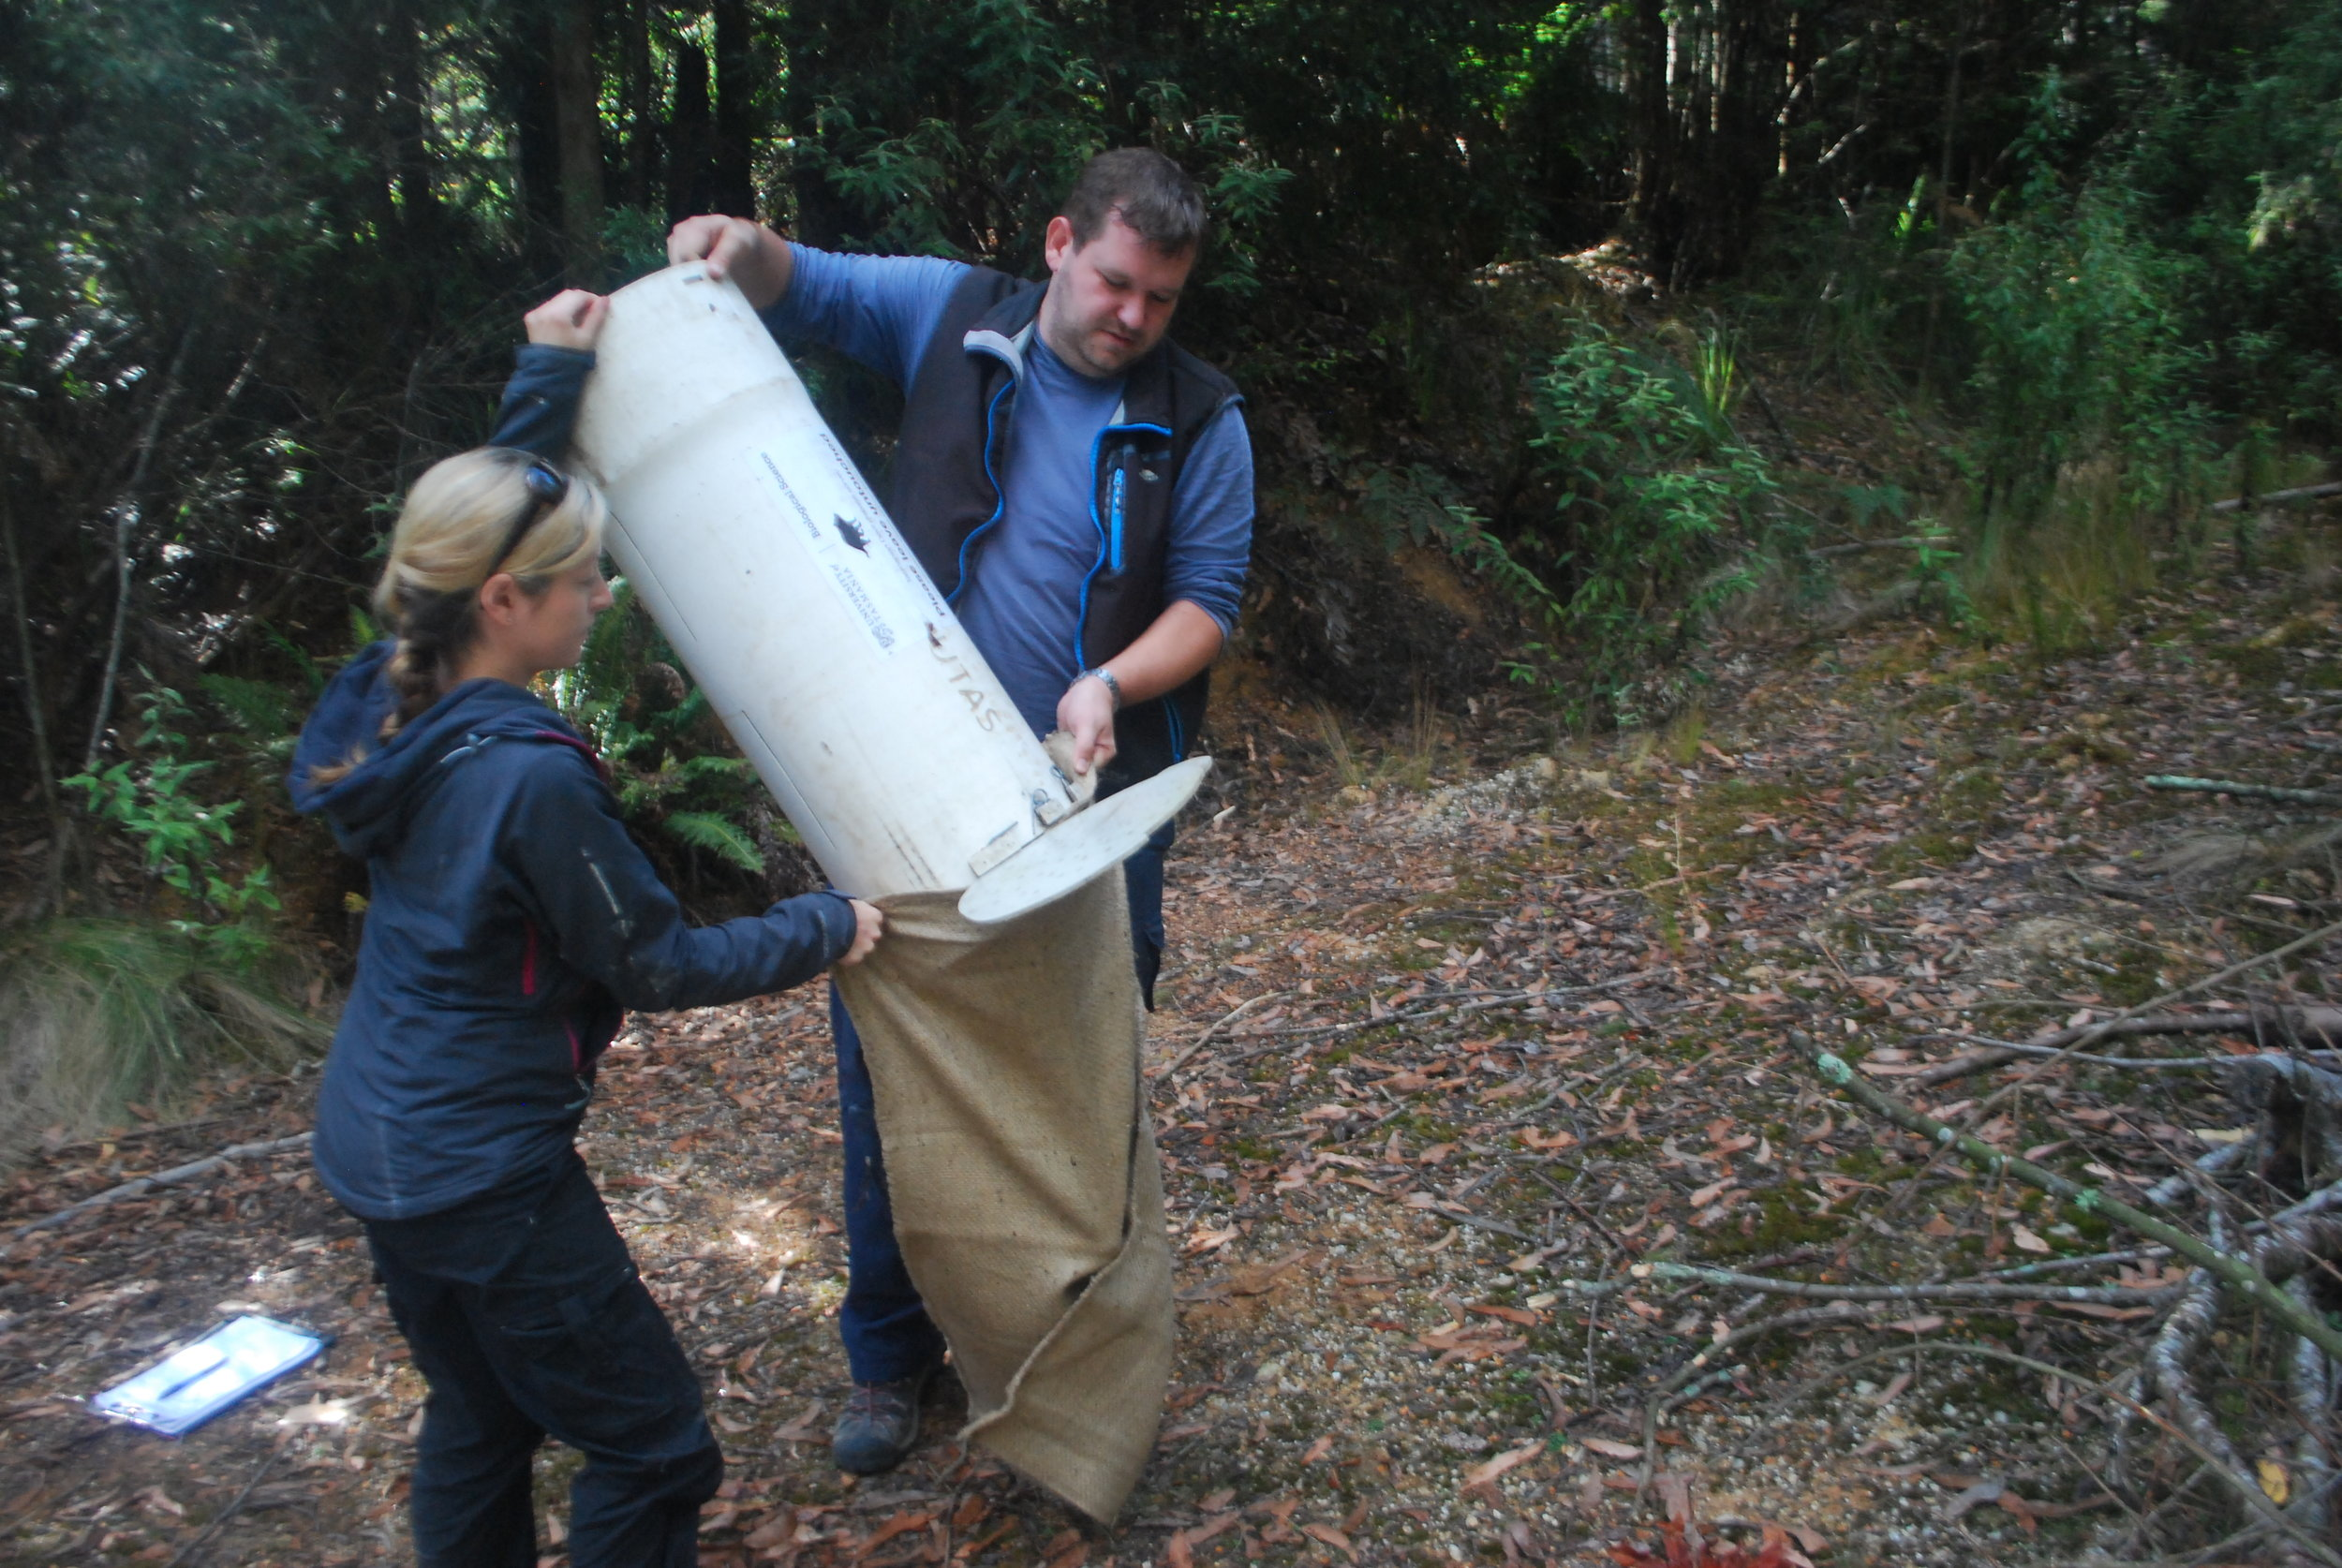 Due to the weight of the devil and the size of the trap, this requires two people: one of the many tasks for volunteers!